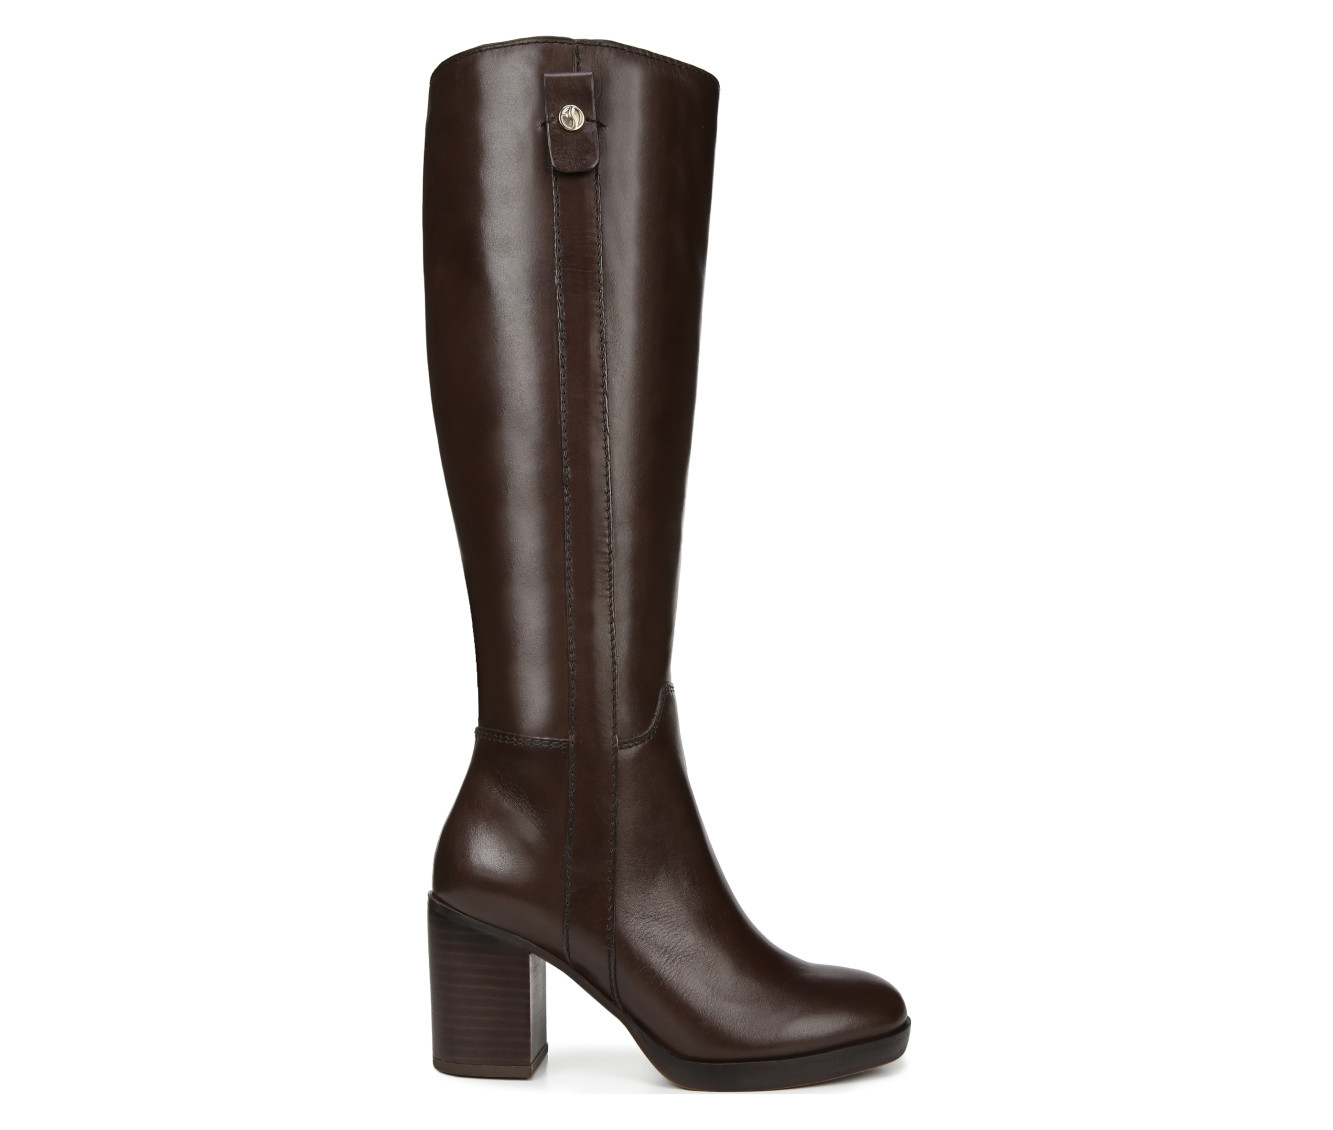 Franco Sarto Kendra Women's Boot (Brown Leather)